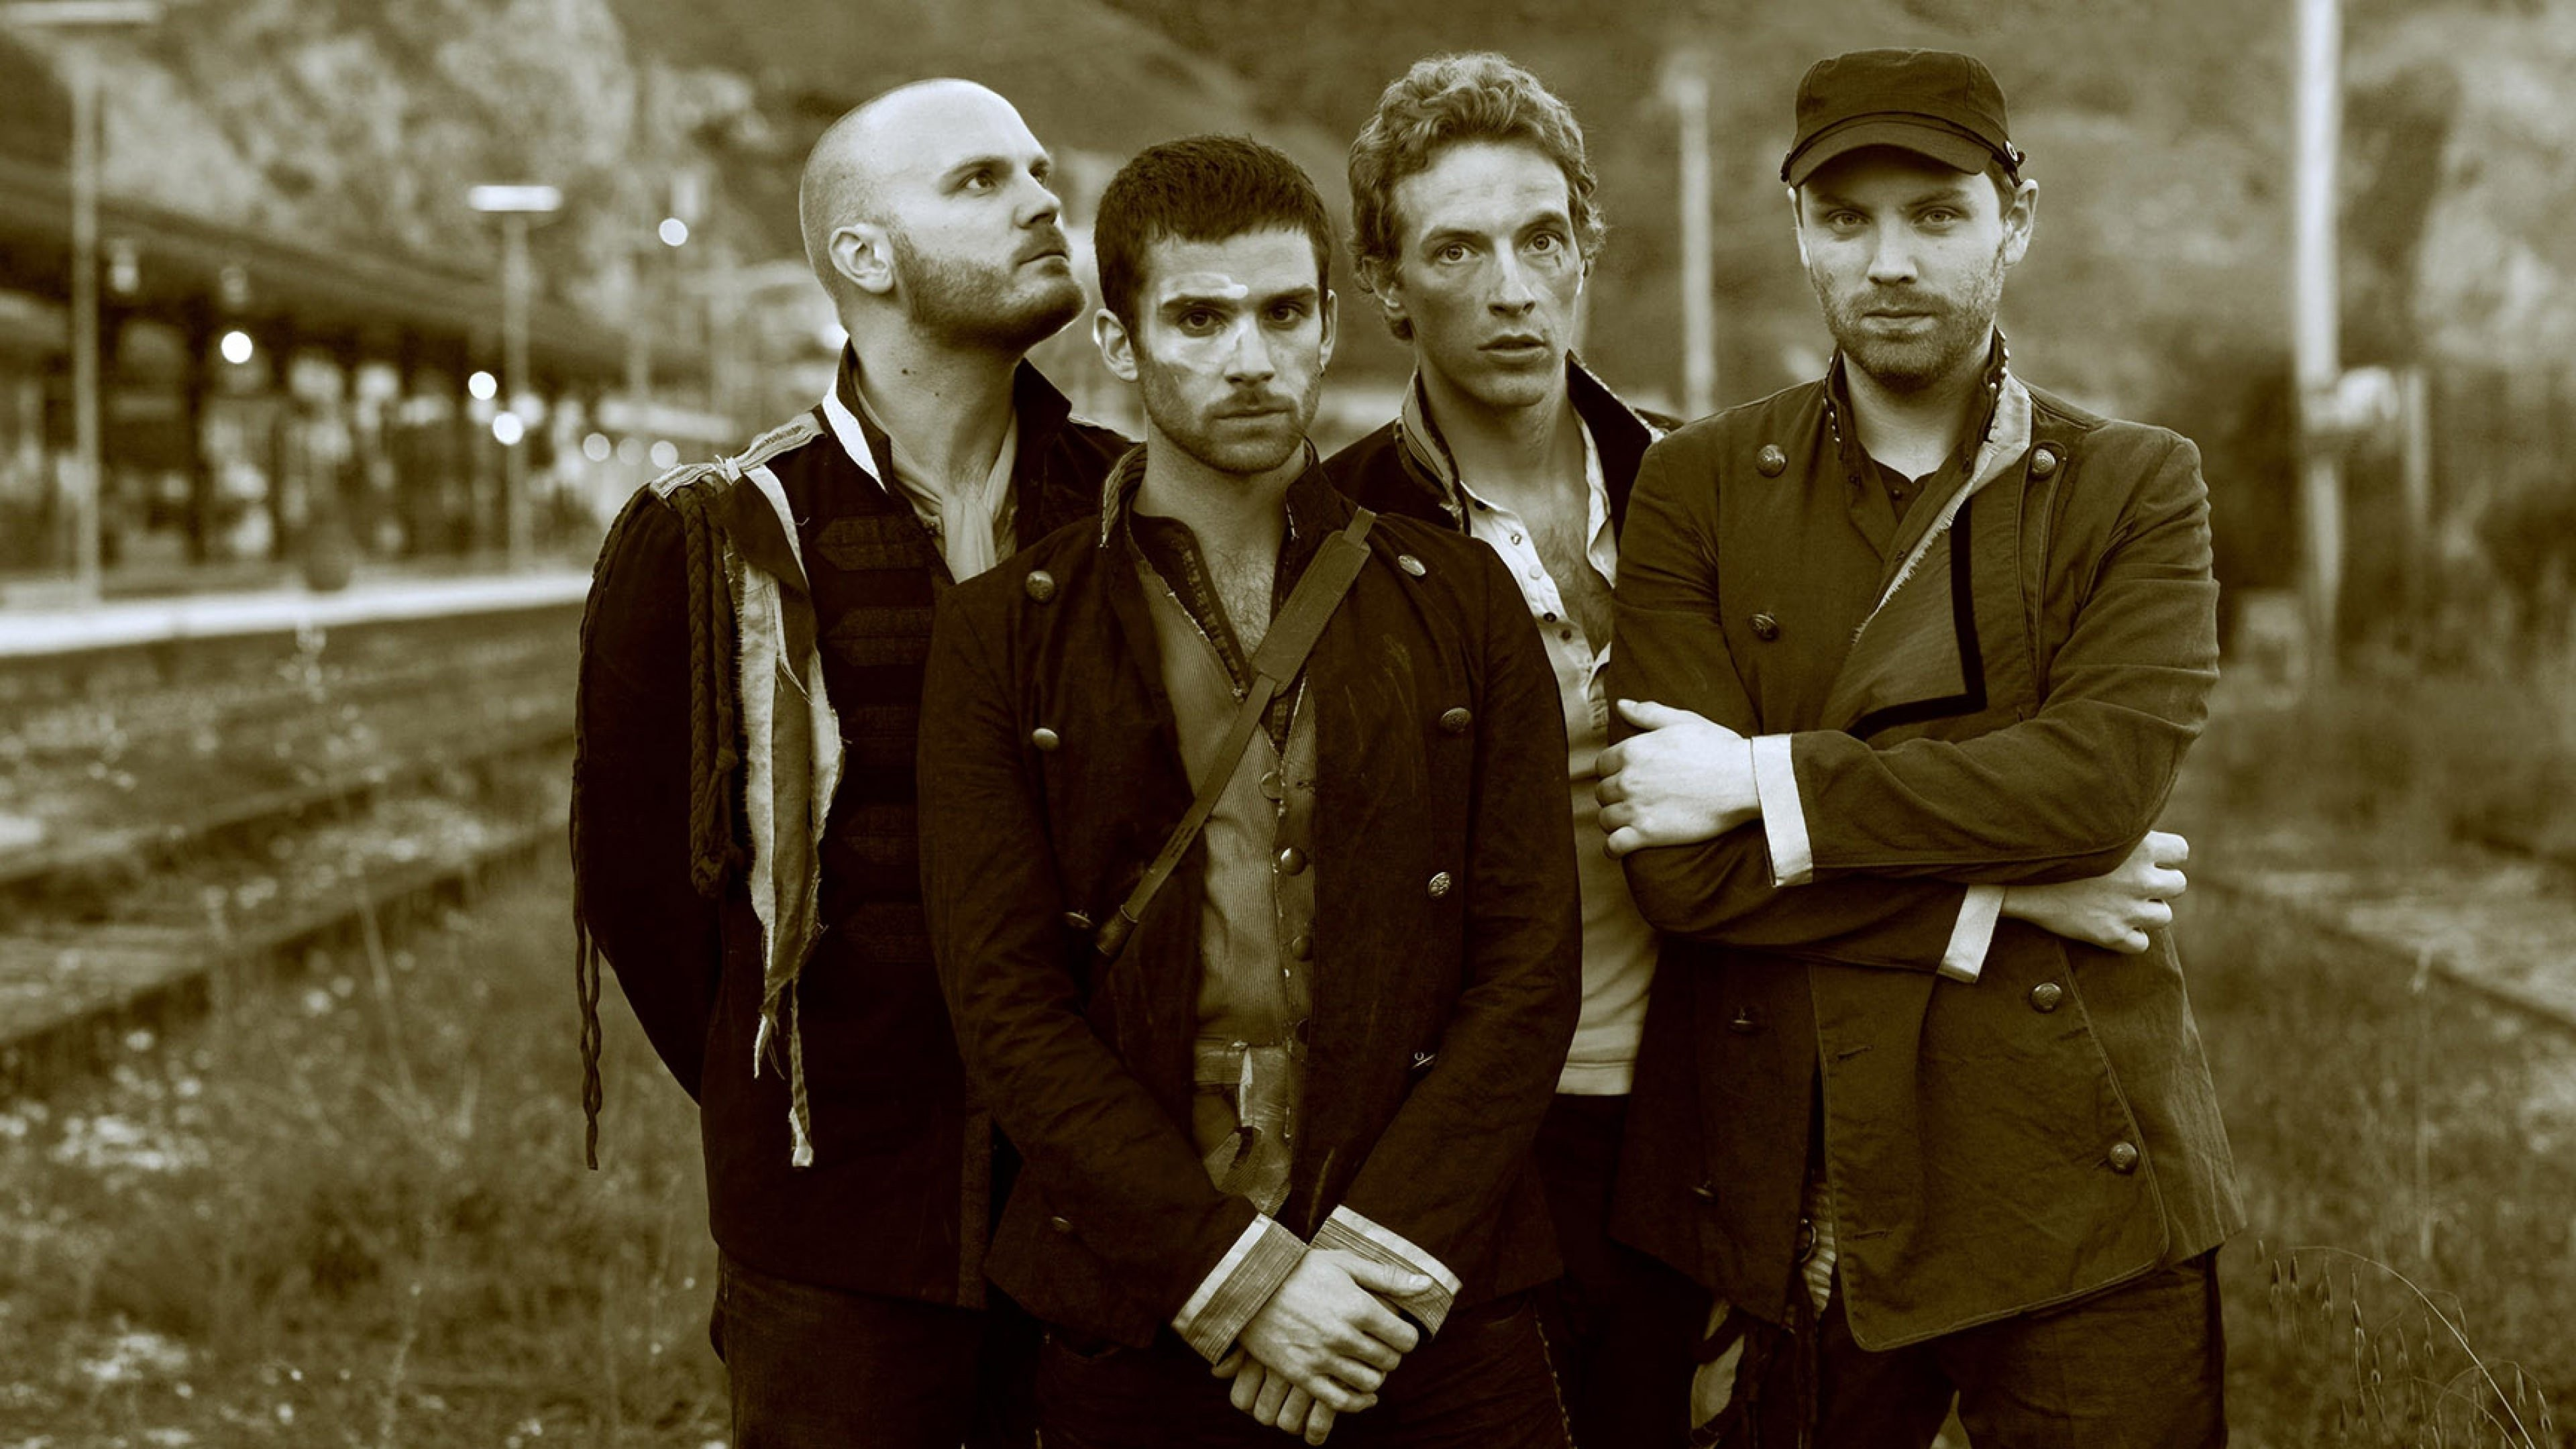 Coldplay Band Sepia Wallpaper for Desktop 4K 3840x2160